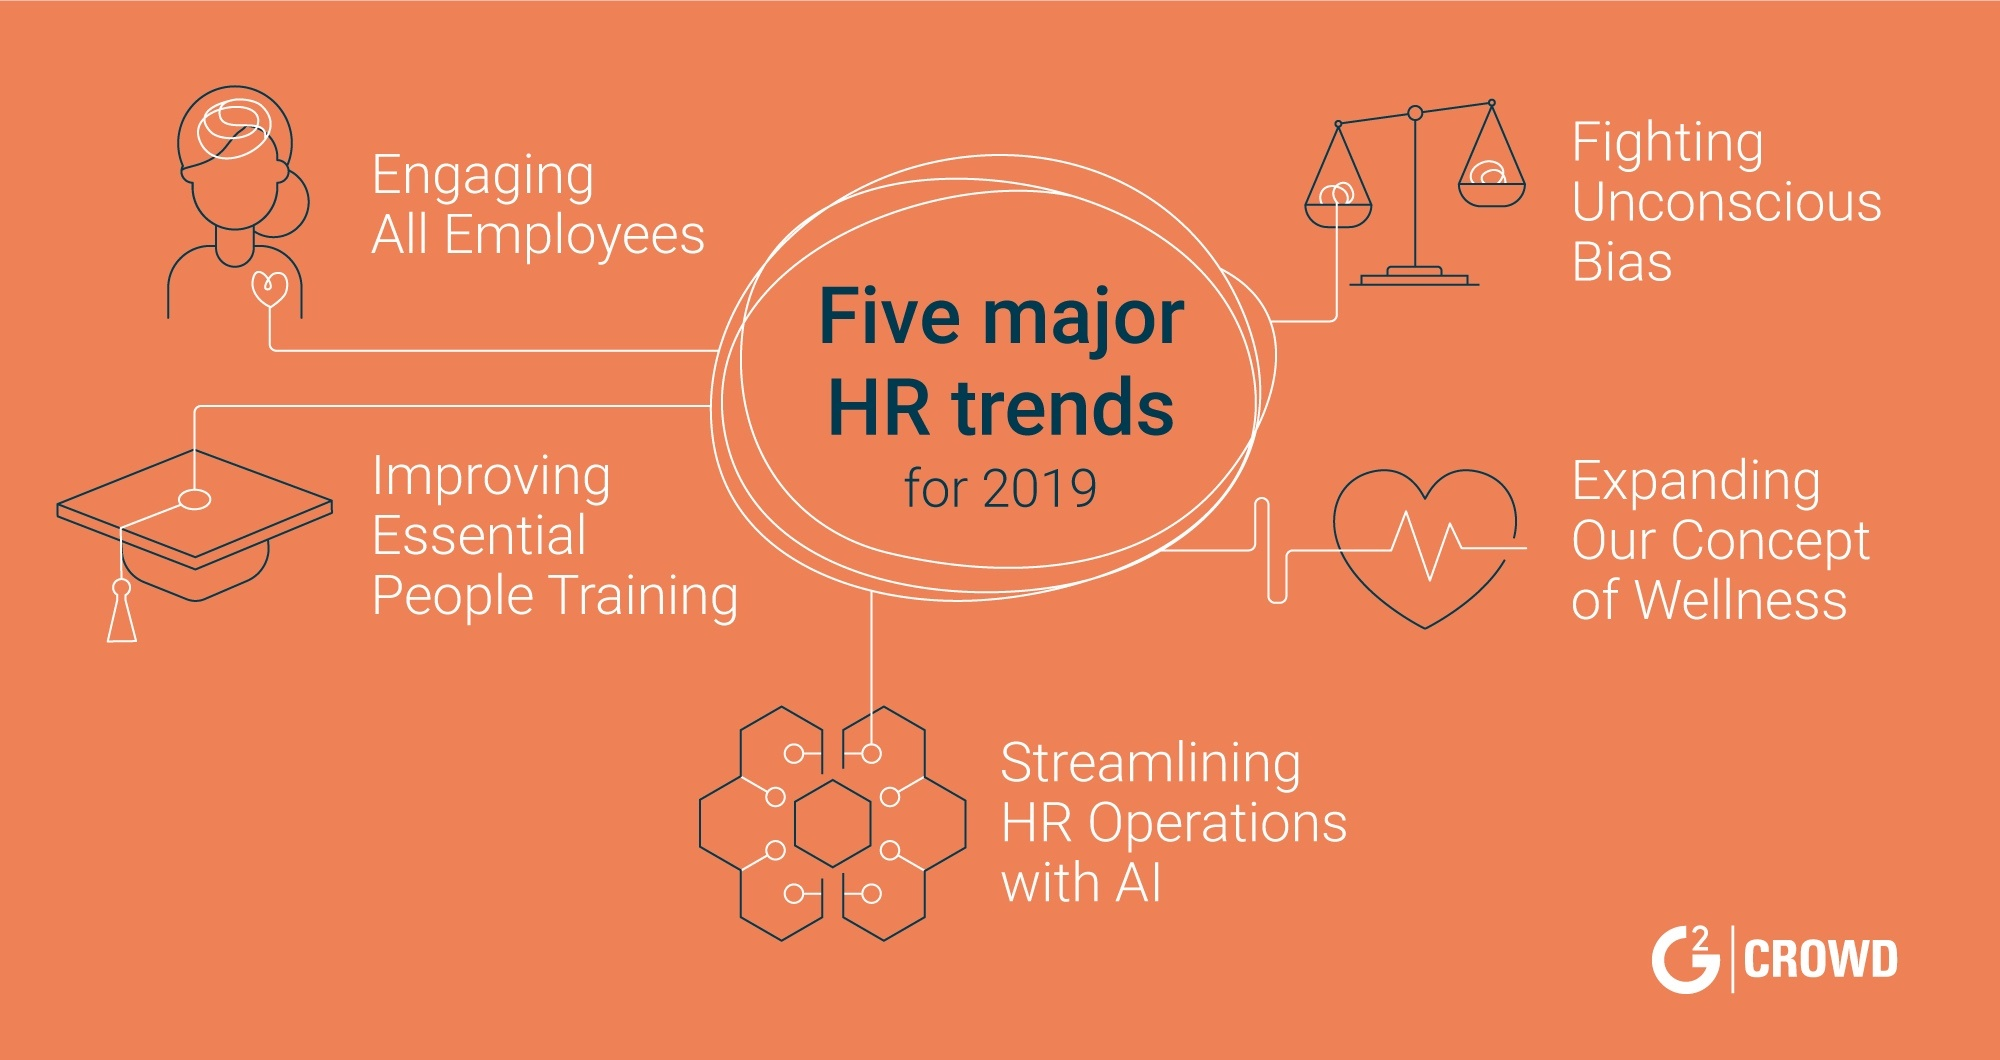 HR Trends: 5 Major Human Resource Innovations in 2019